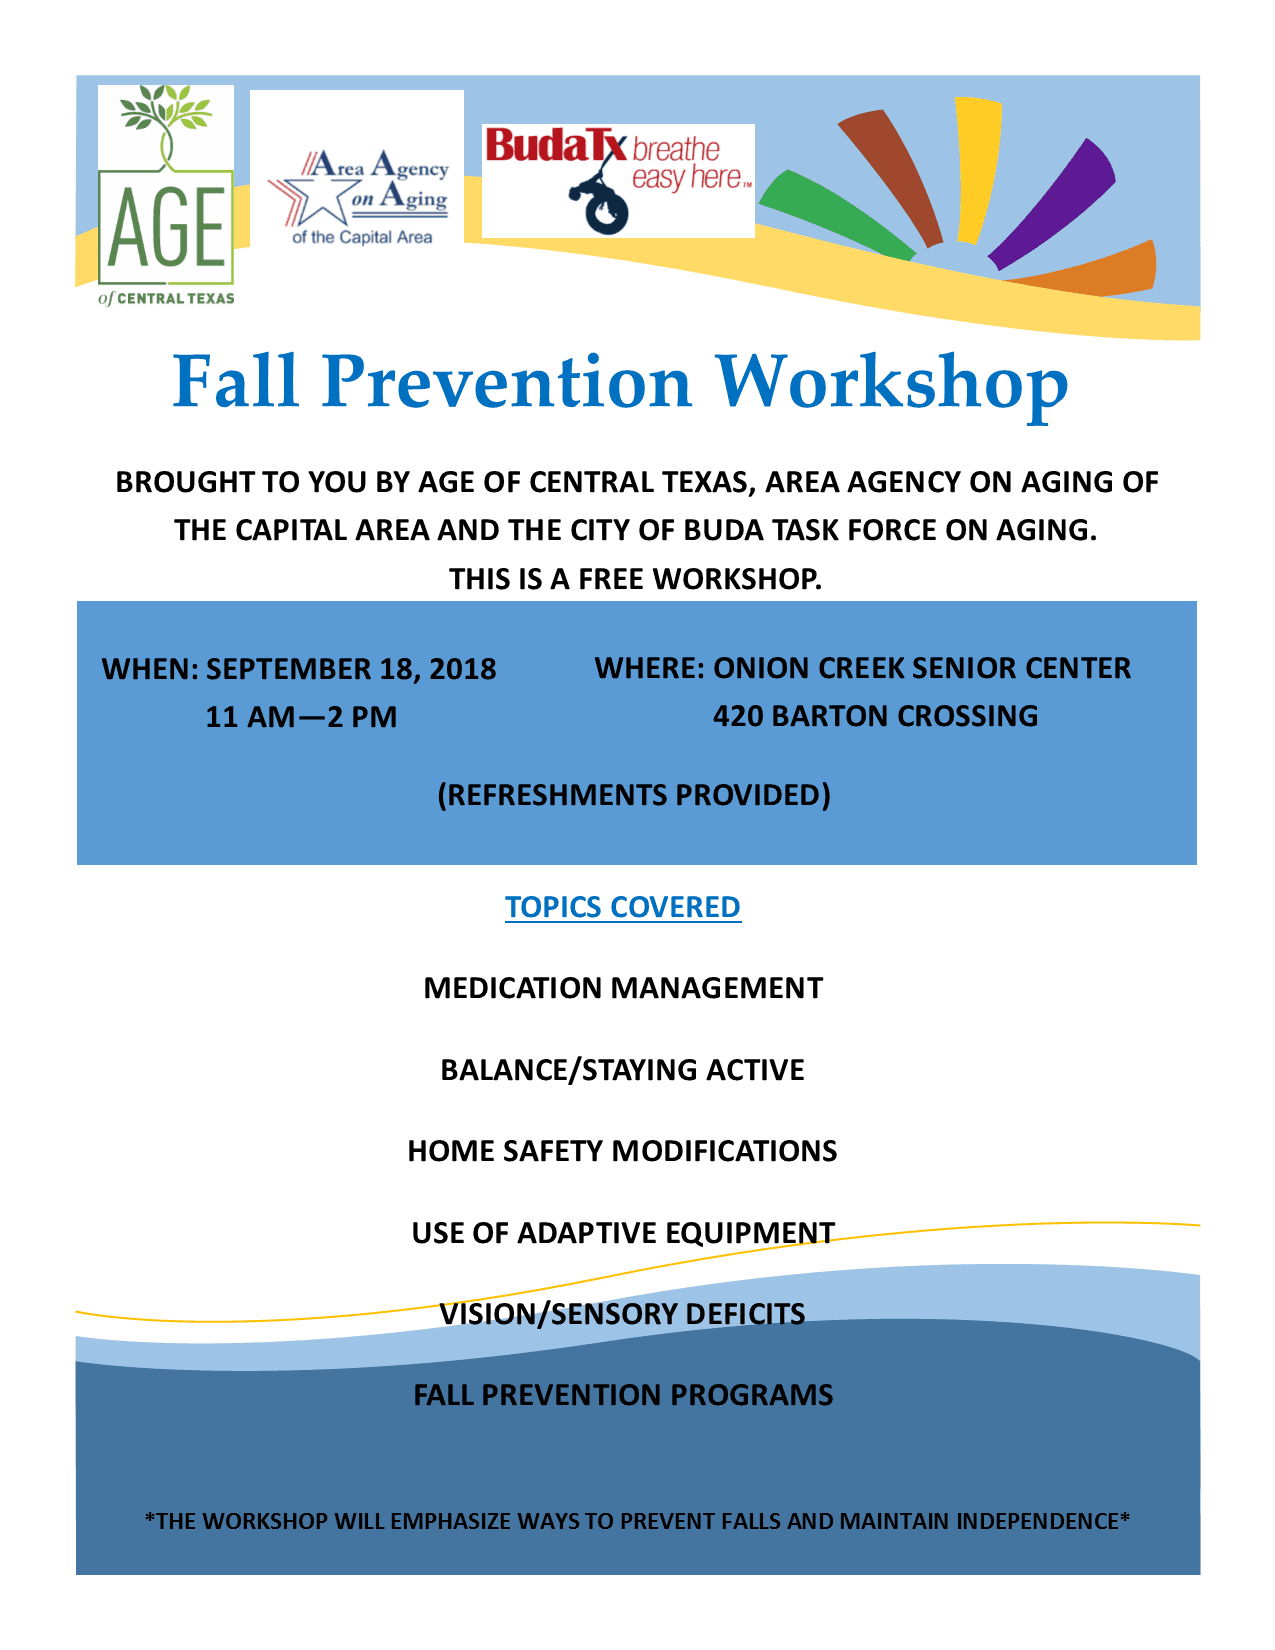 Fall Prevention Workshop Flyer